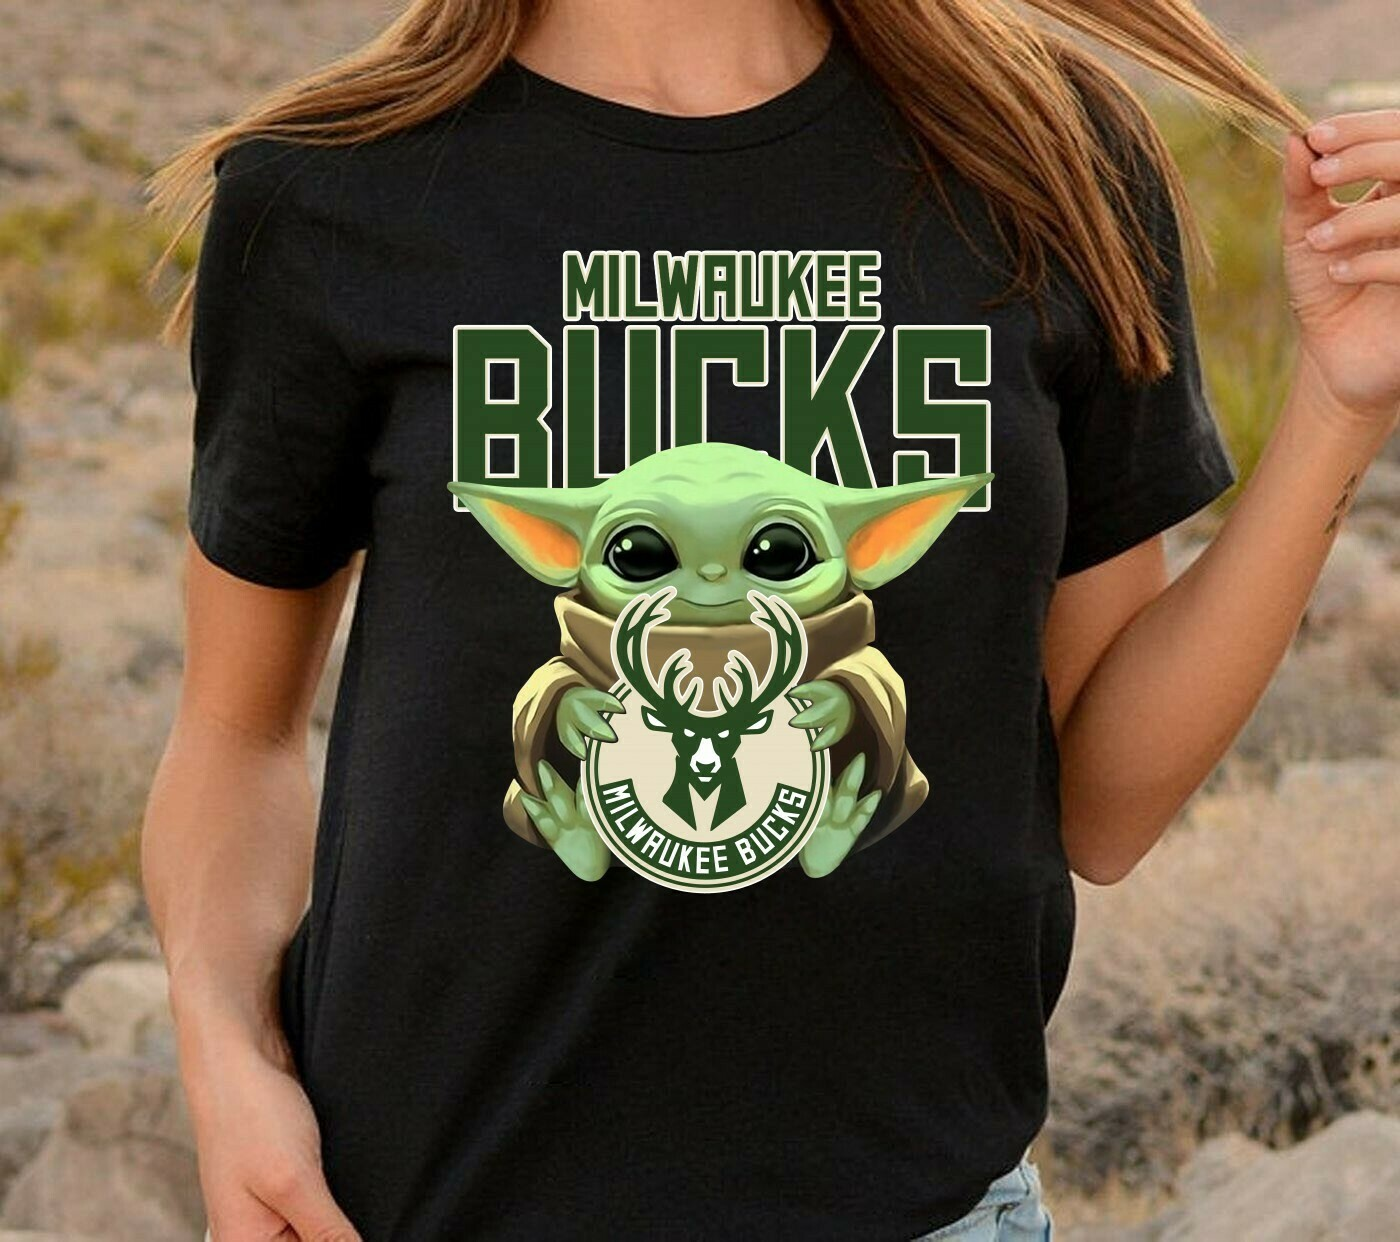 Milwaukee Bucks Baby Yoda Star Wars The Mandalorian The Child First Memories Floating NBA Basketball Dad Mon Kid Fan Gift T-Shirt Long Sleeve Sweatshirt Hoodie Jolly Family Gifts